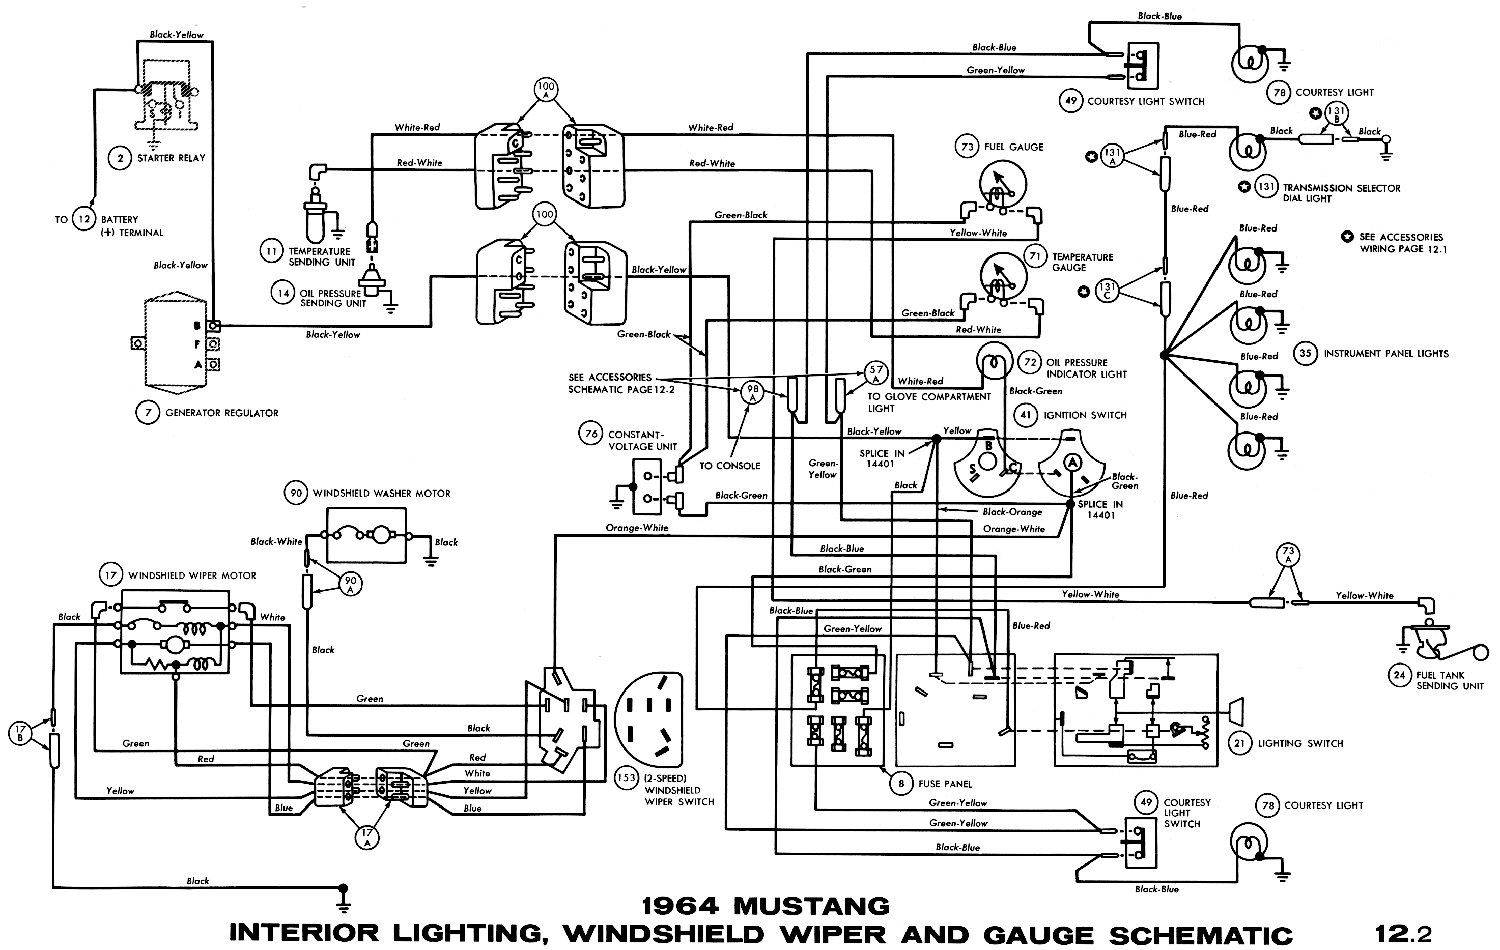 Mustang el on 1965 mustang gauge wiring diagram